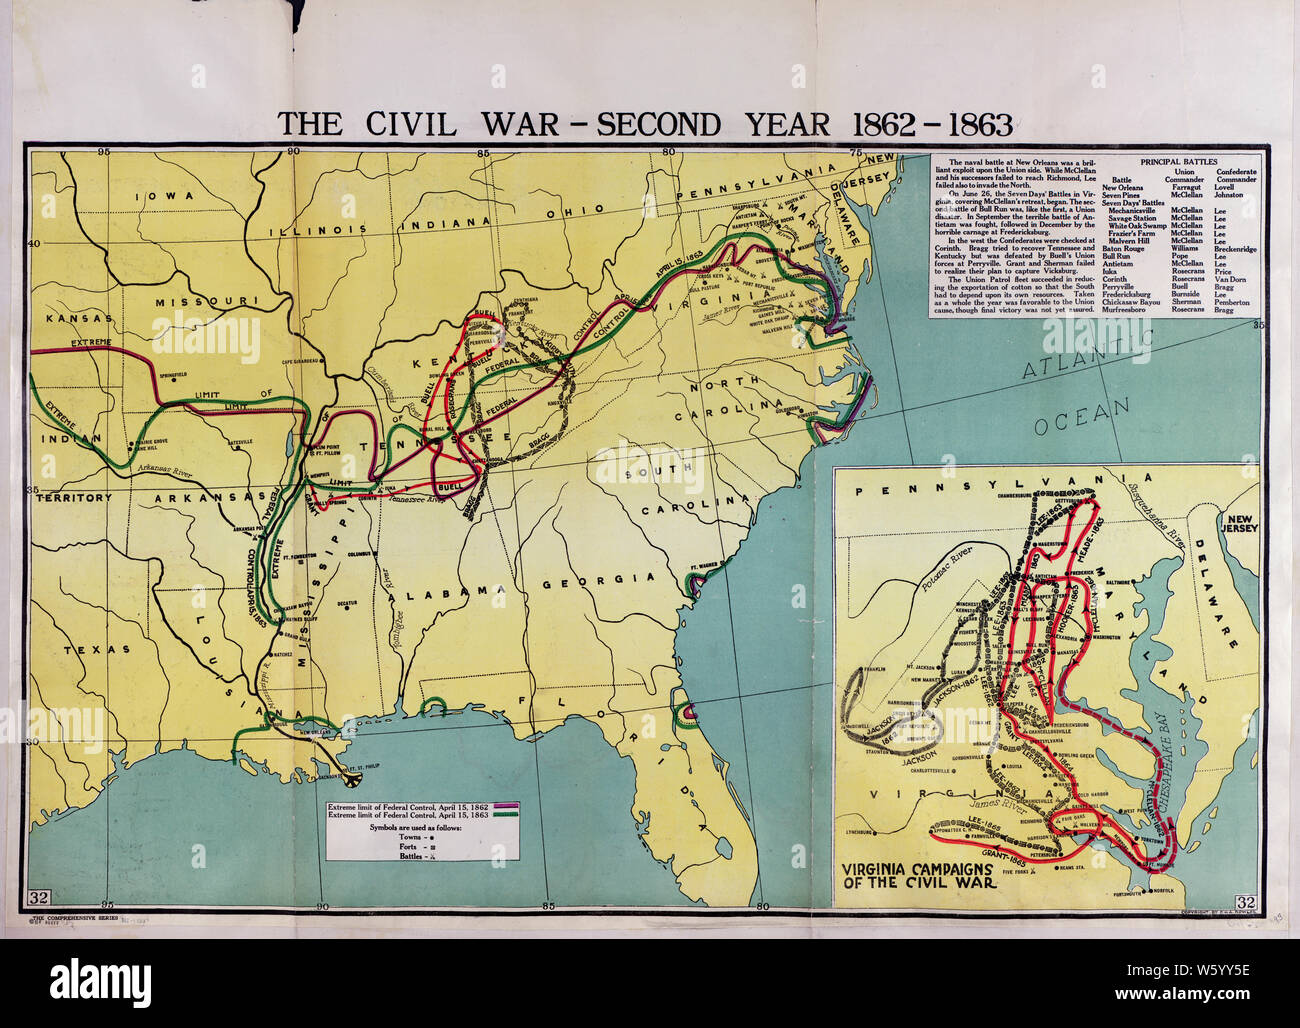 Civil War Maps 1759 The Comprehensive Series Historical Geographical Maps Of The United States 02 Rebuild And Repair Stock Photo Alamy